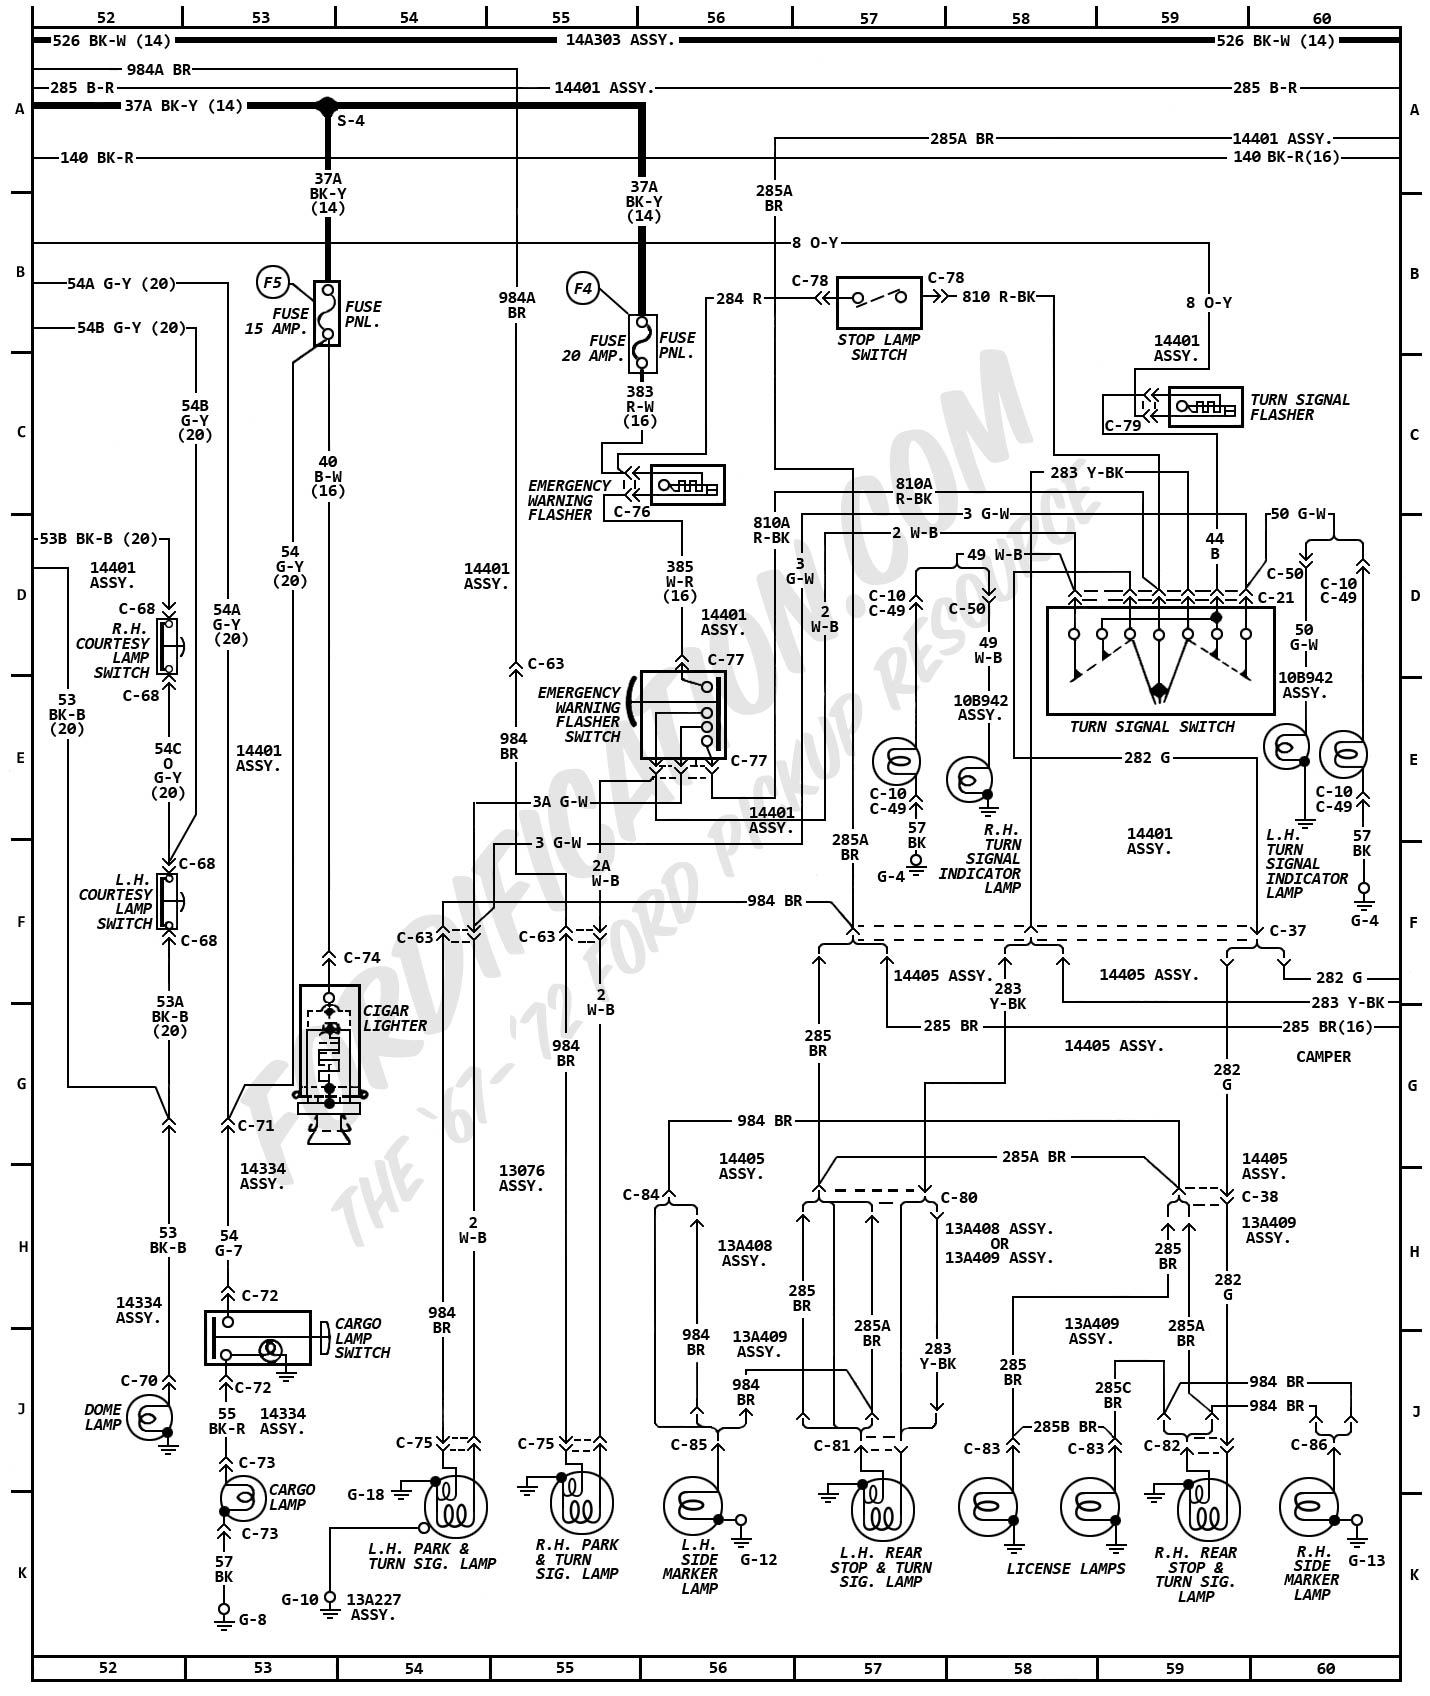 ford f250 wire diagram wiring diagram 2000 ford f-250 wiring diagram 1999 ford f 250 wiring diagram #15